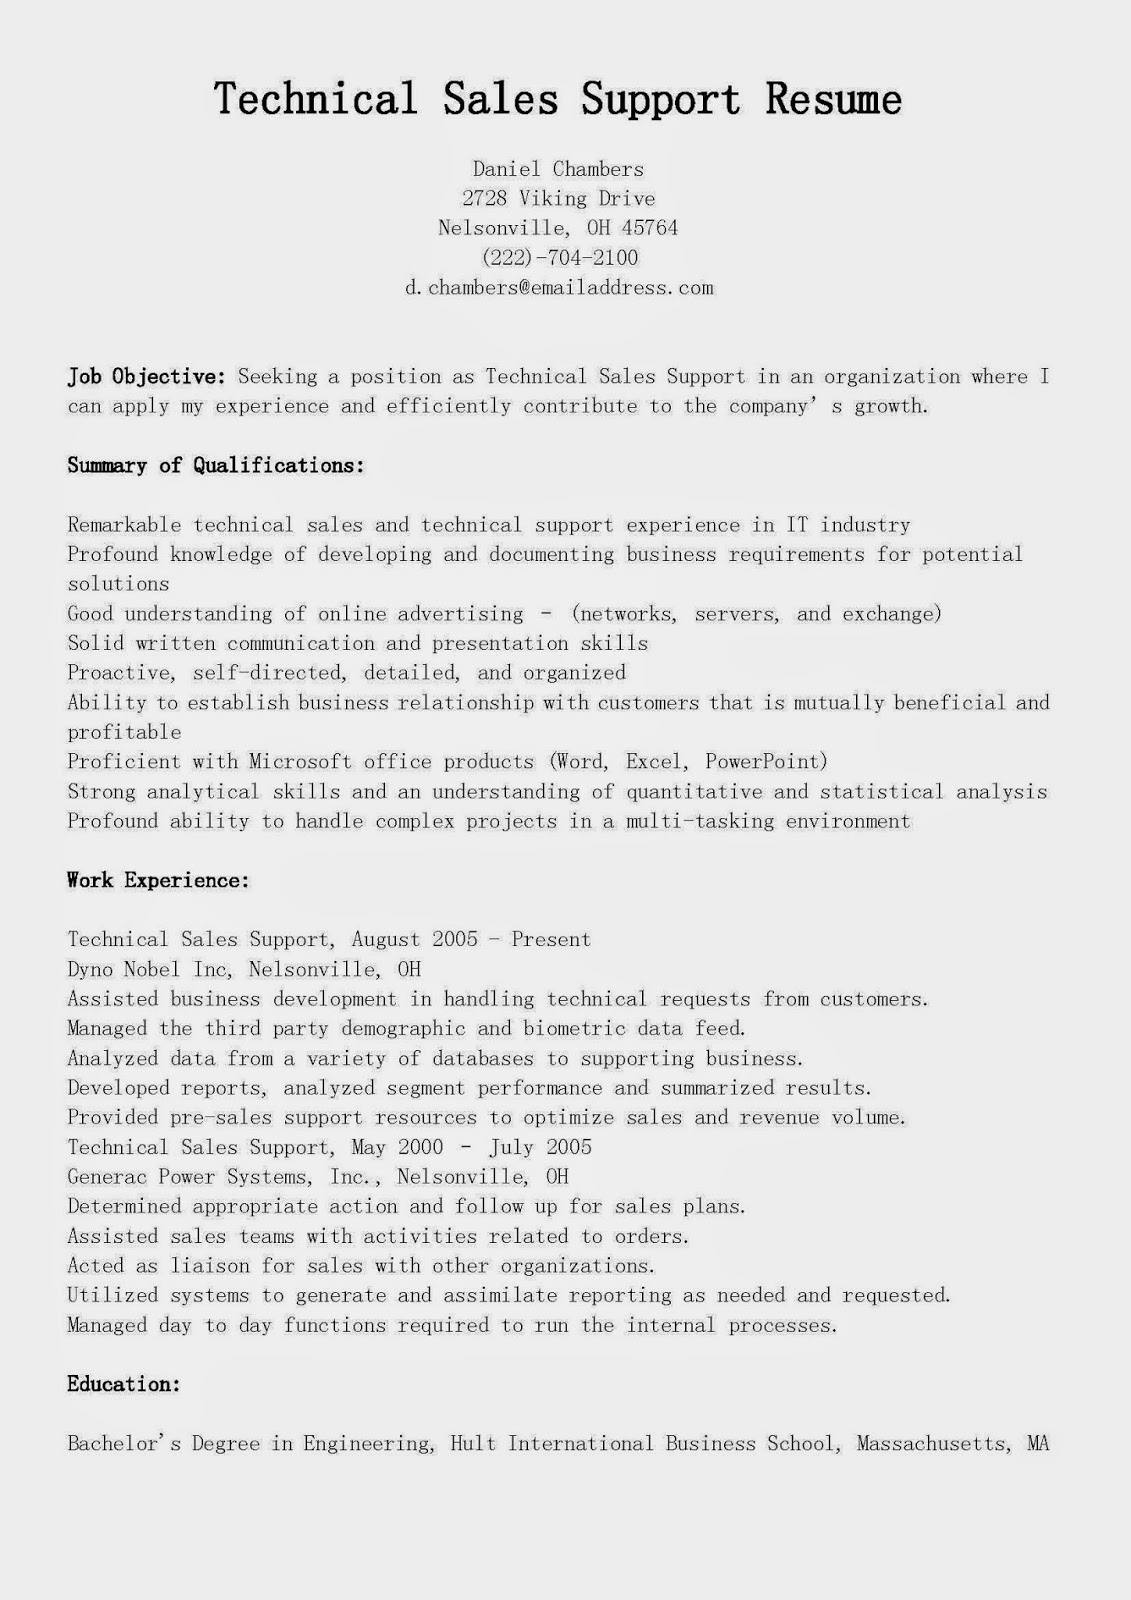 resume samples  technical sales support resume sample